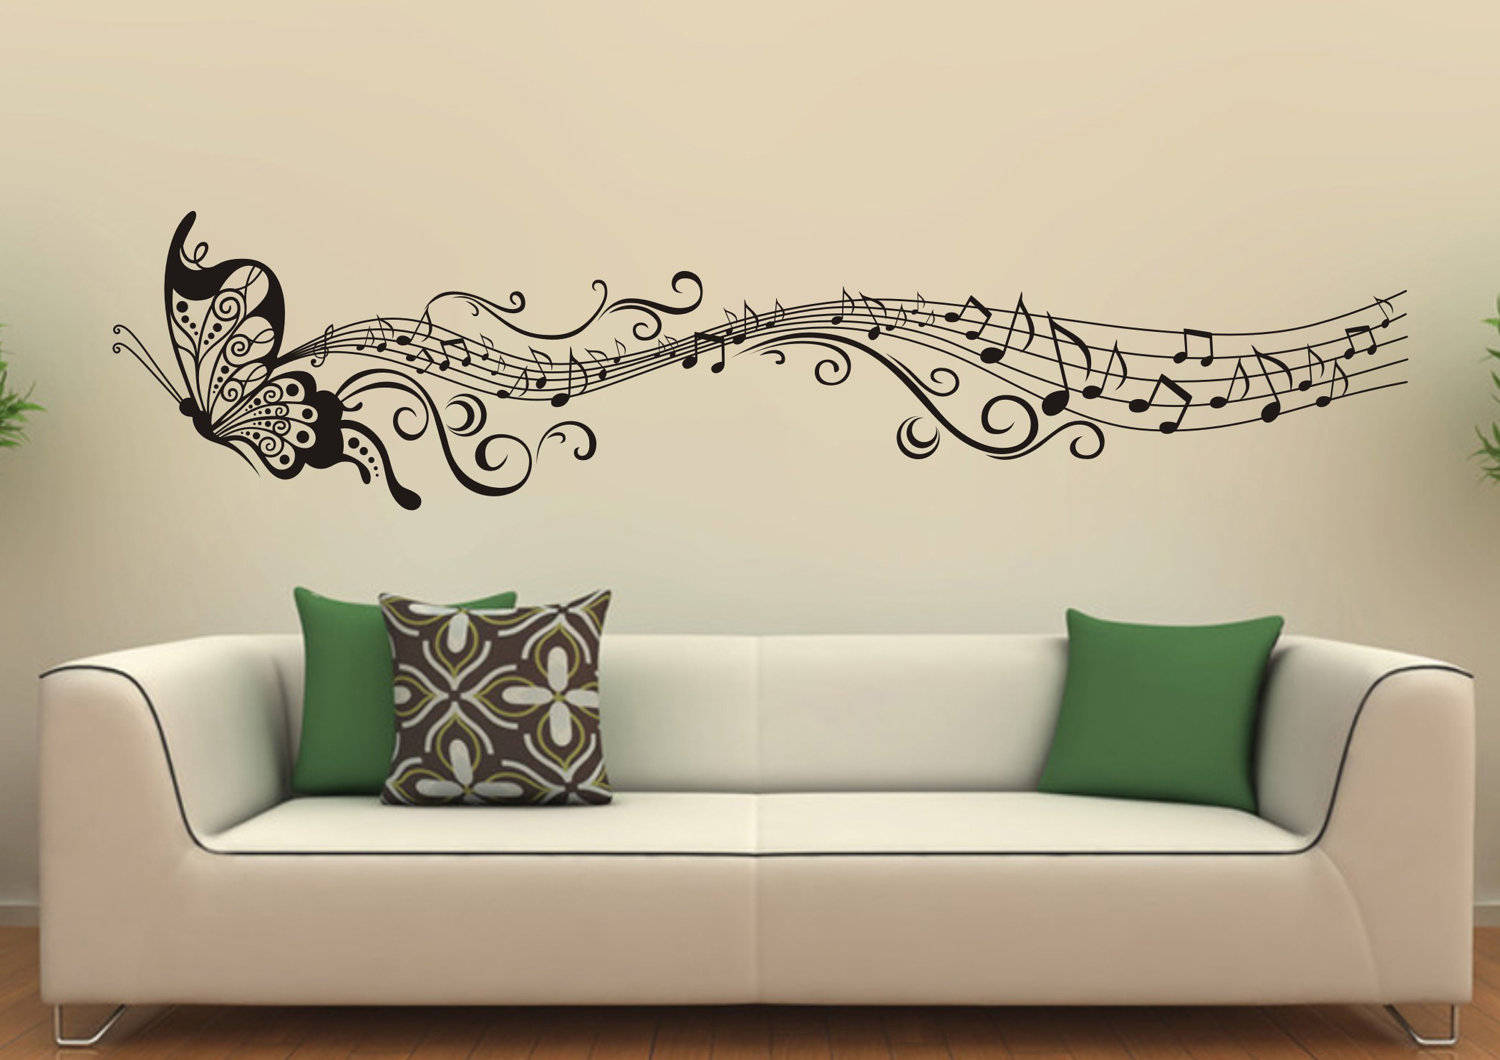 Wall decoration ideas for